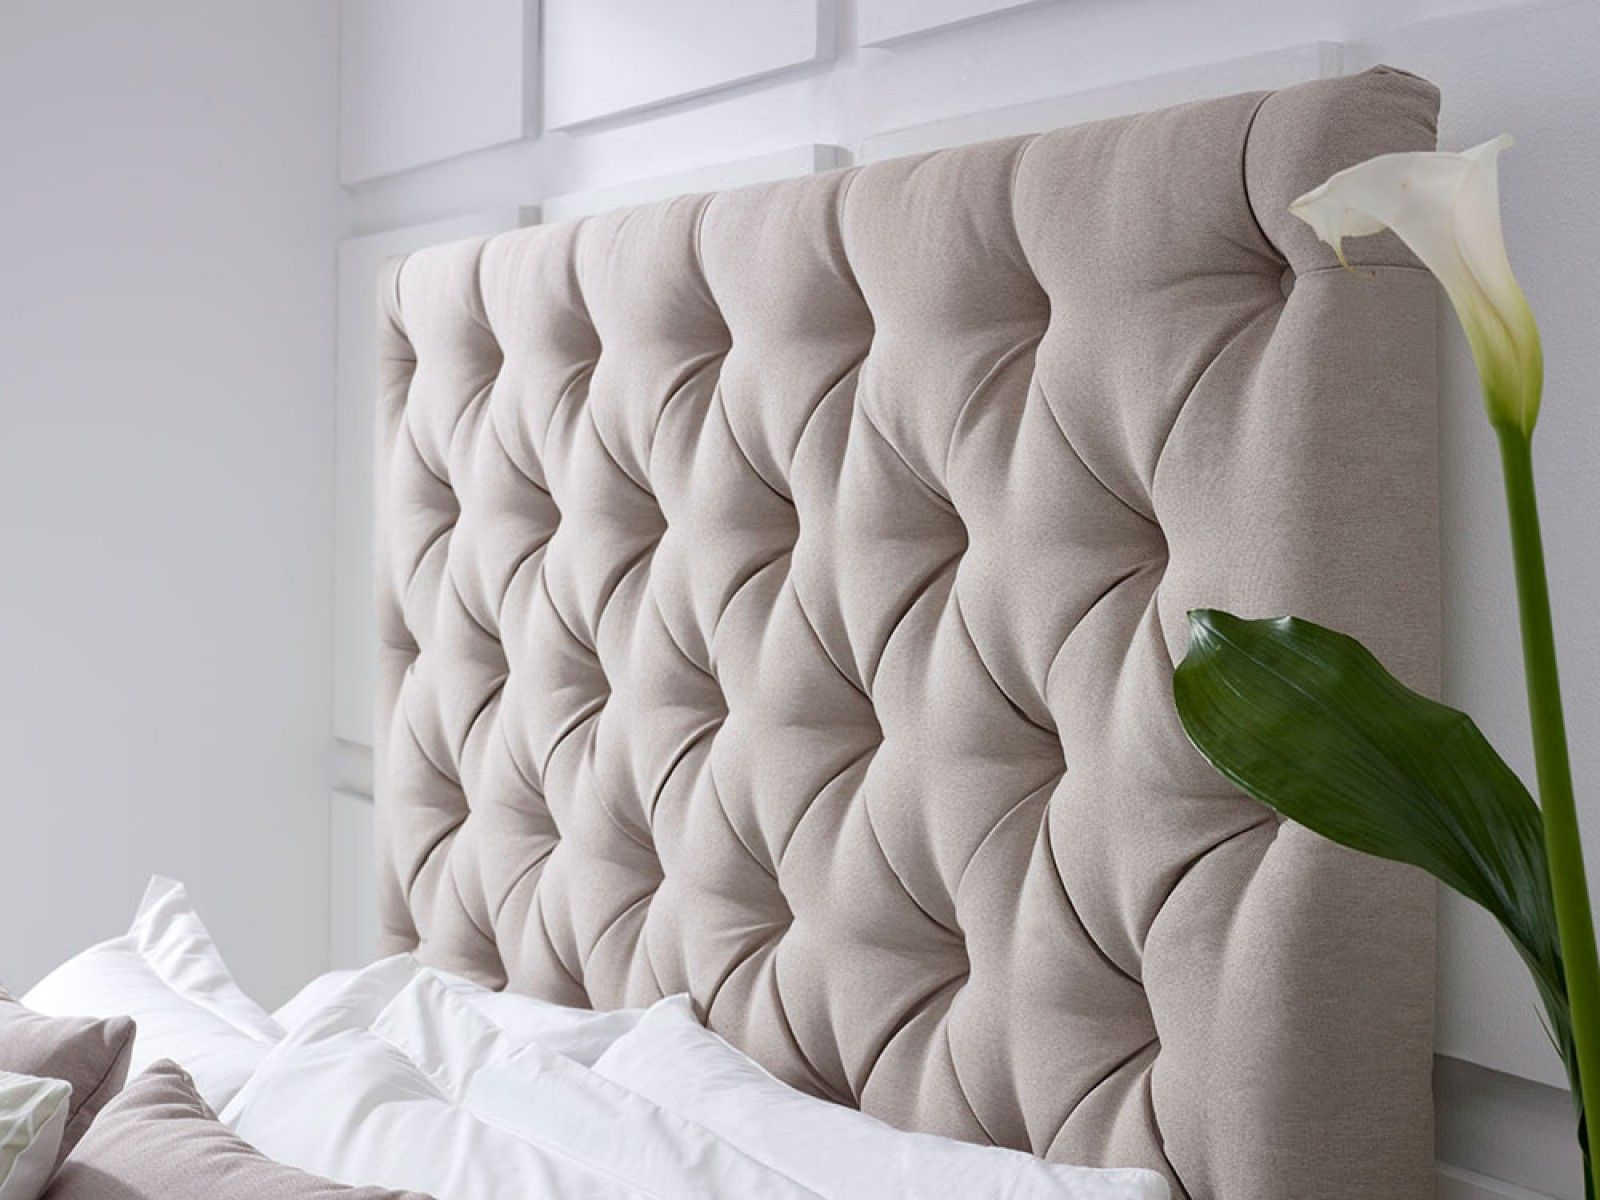 timeless classic head boards headboard ideas bedhead upholstered beds beautiful bedrooms master bedrooms upholstery 34 beds